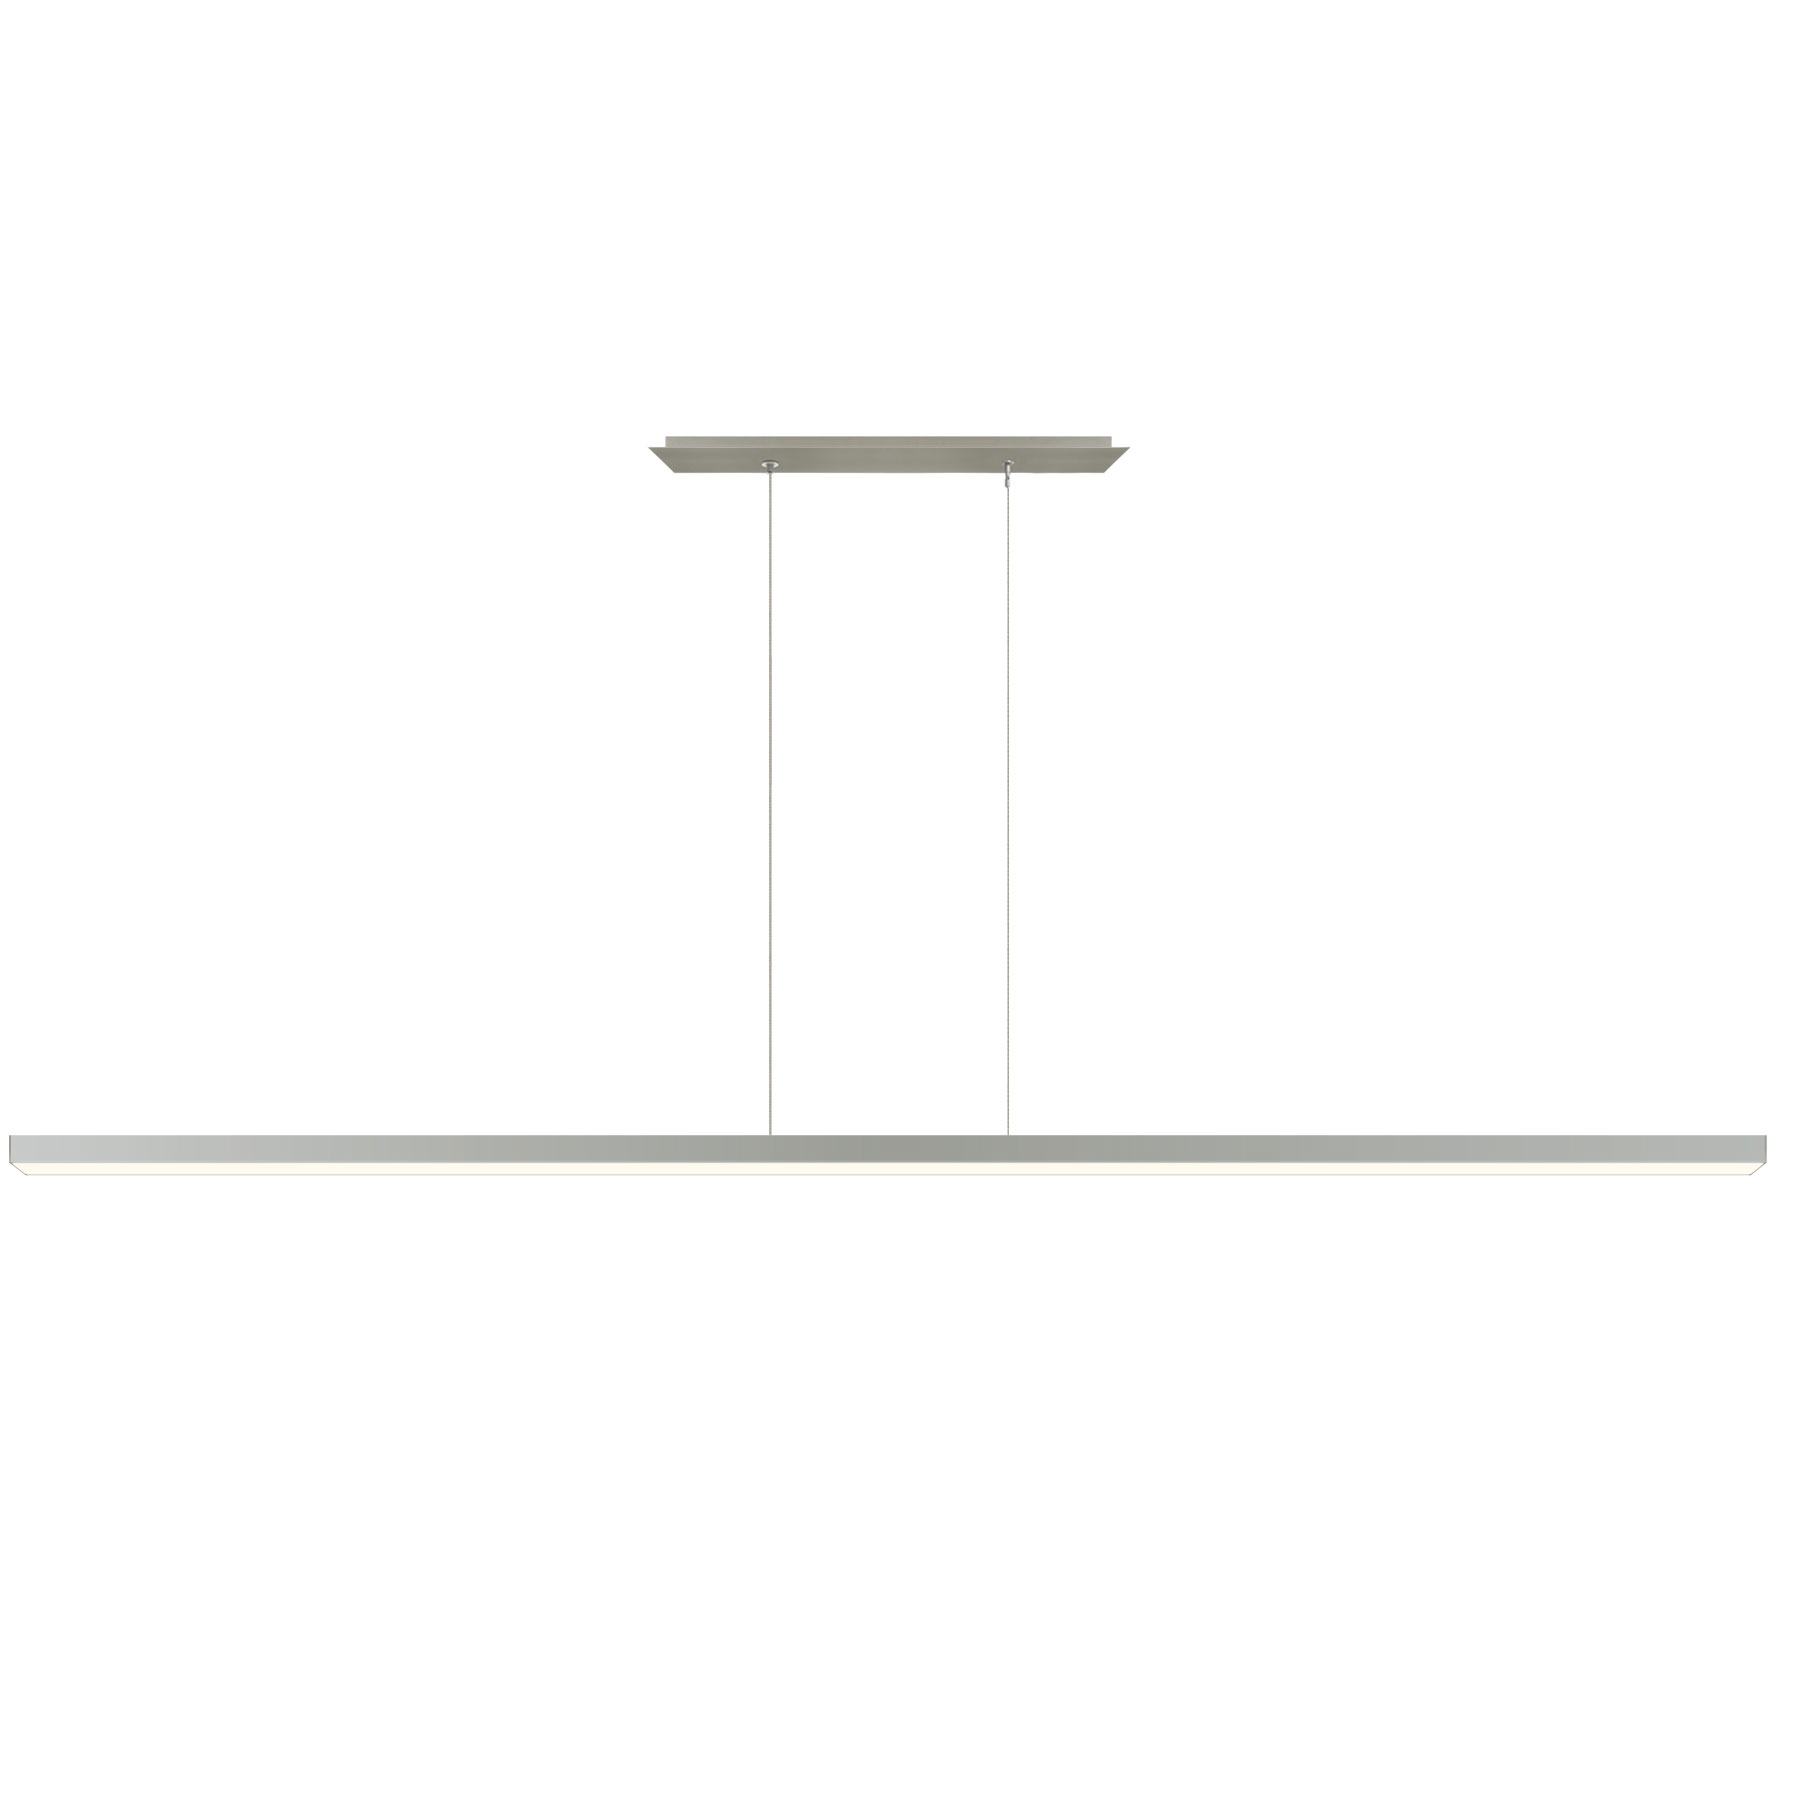 Cirrus D1 Linear Suspension W Center Feed By Pureedge Lighting Csdsp 7w C 36 27k Sn